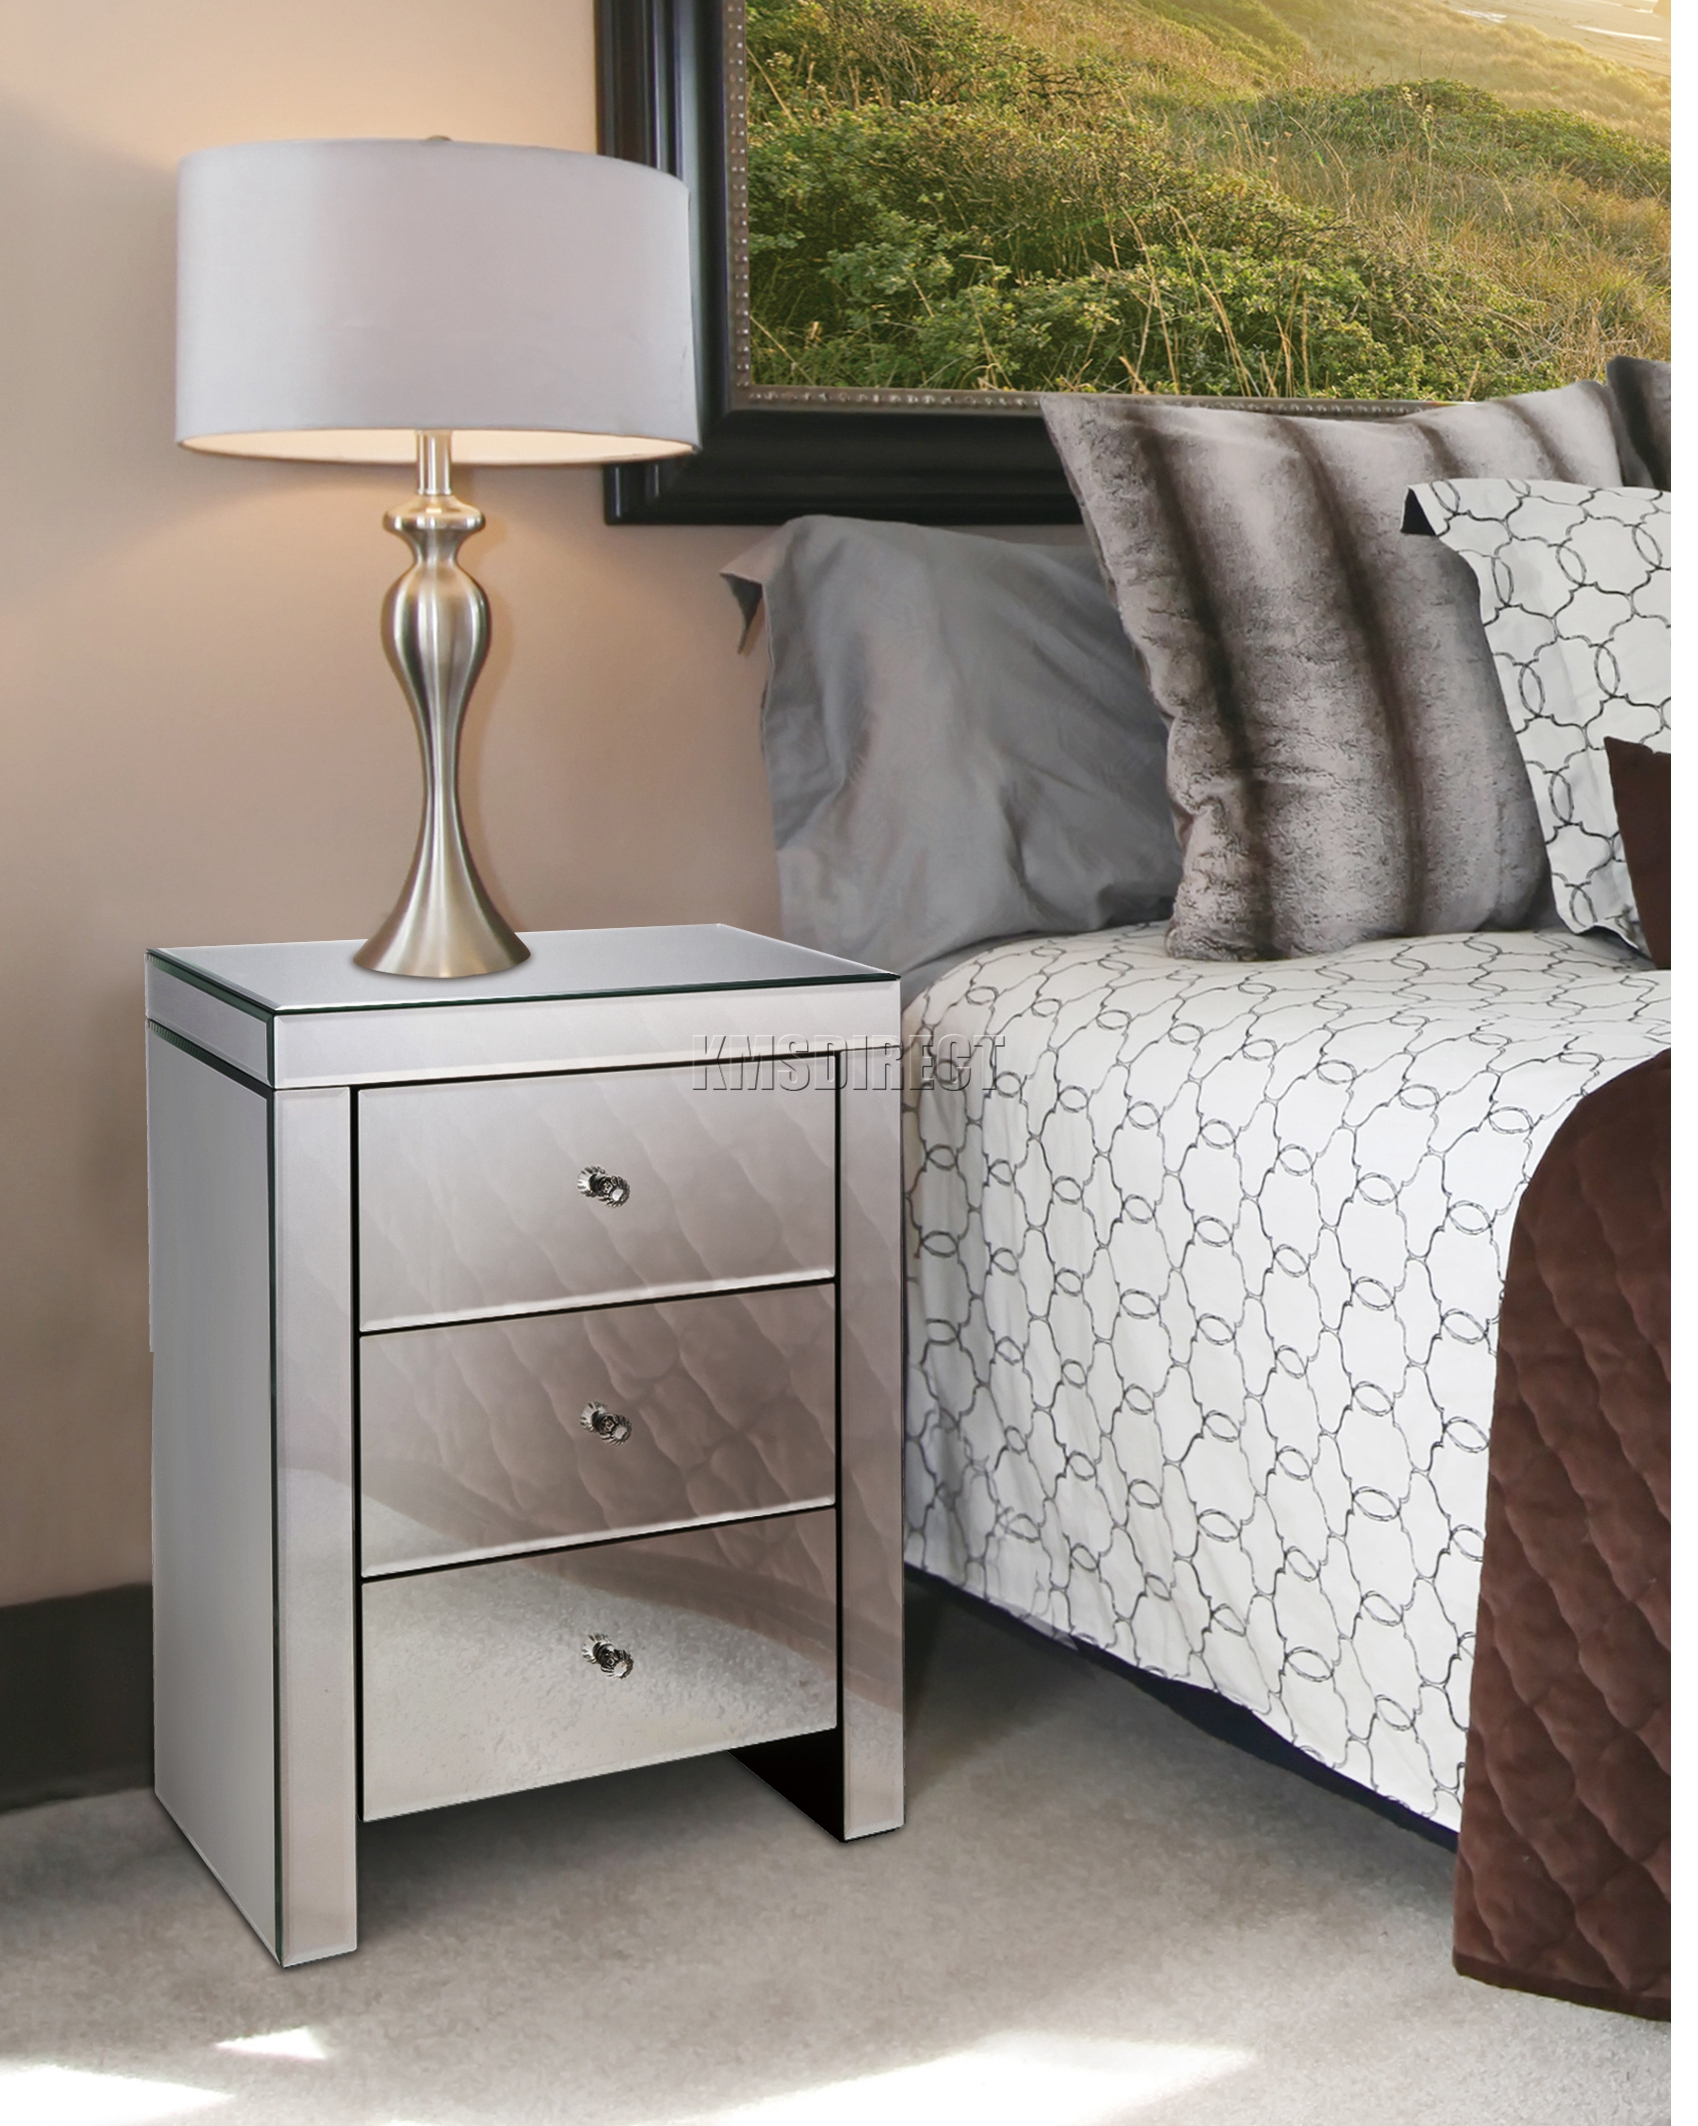 Foxhunter mirrored furniture glass bedside cabinet table for Mirror bedside table